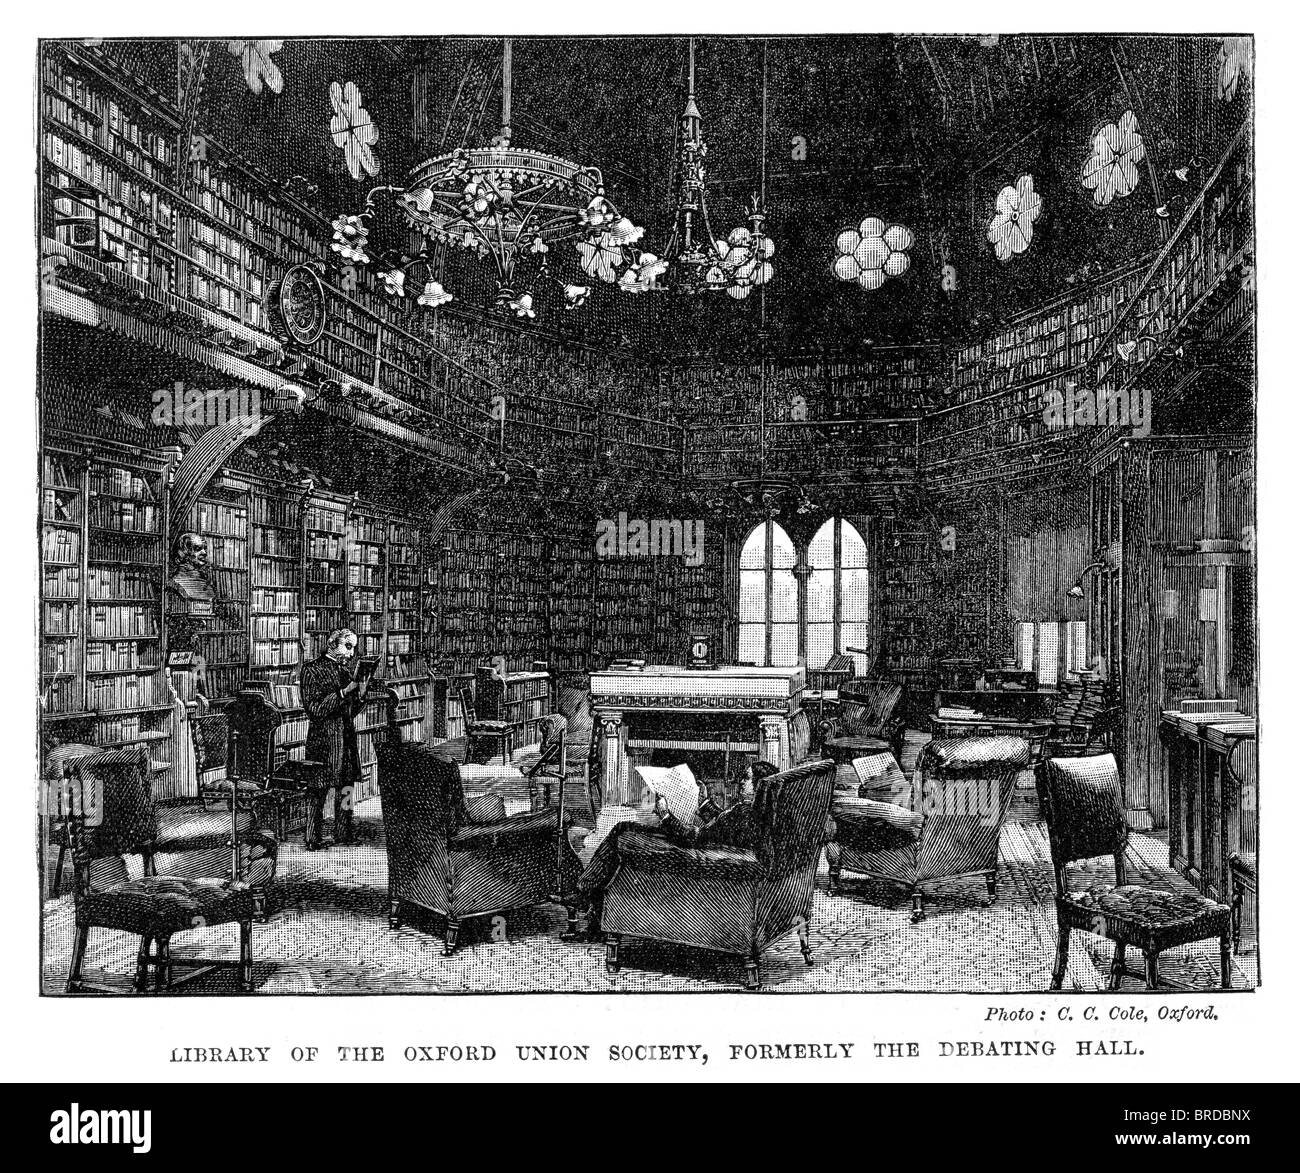 Library of the Oxford Union Society, formerly the Debating Hall. Oxford University. - Stock Image